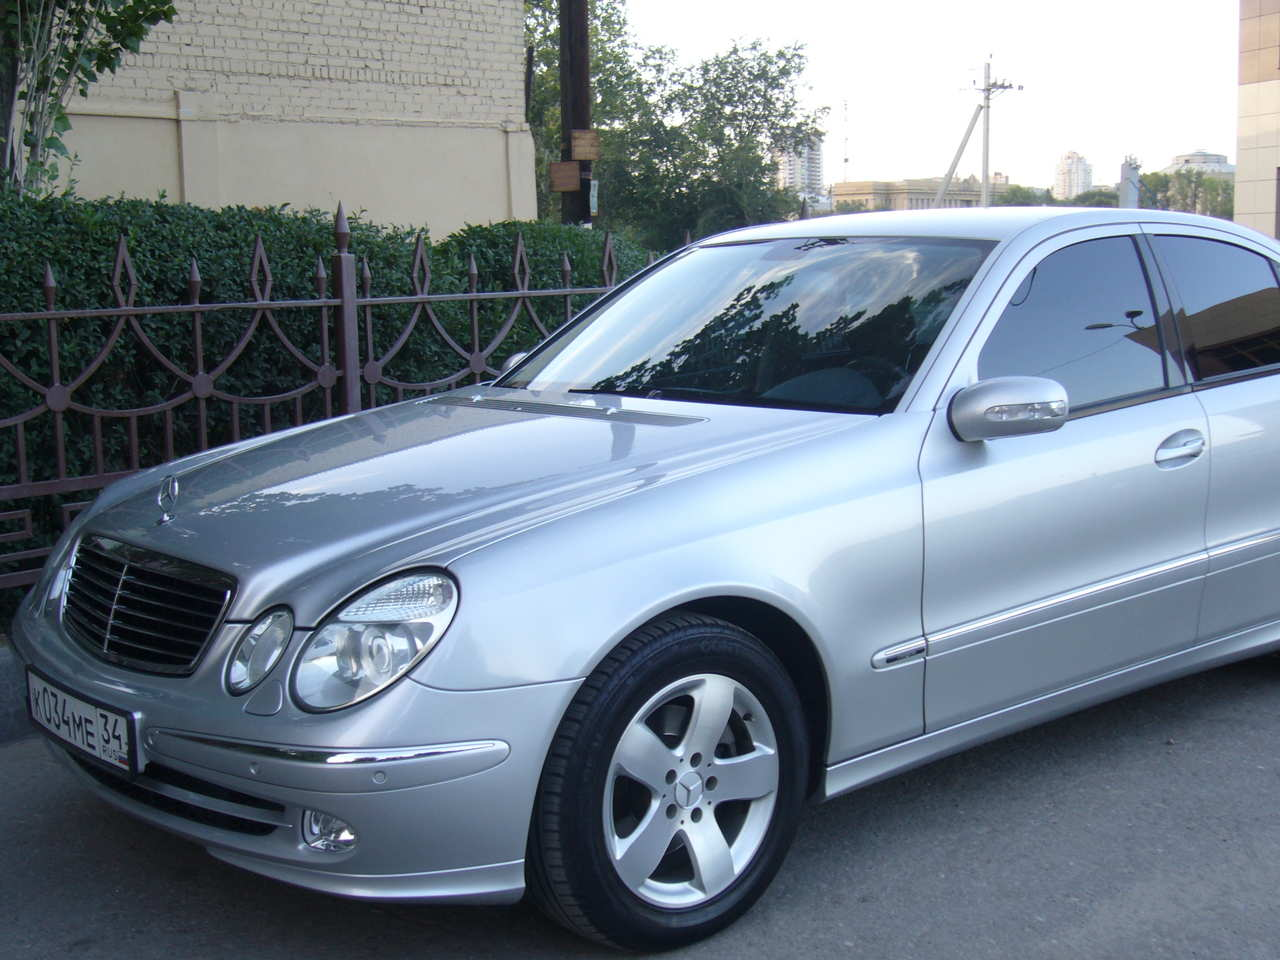 2005 mercedes benz e class photos 2 0 gasoline fr or rr automatic for sale. Black Bedroom Furniture Sets. Home Design Ideas